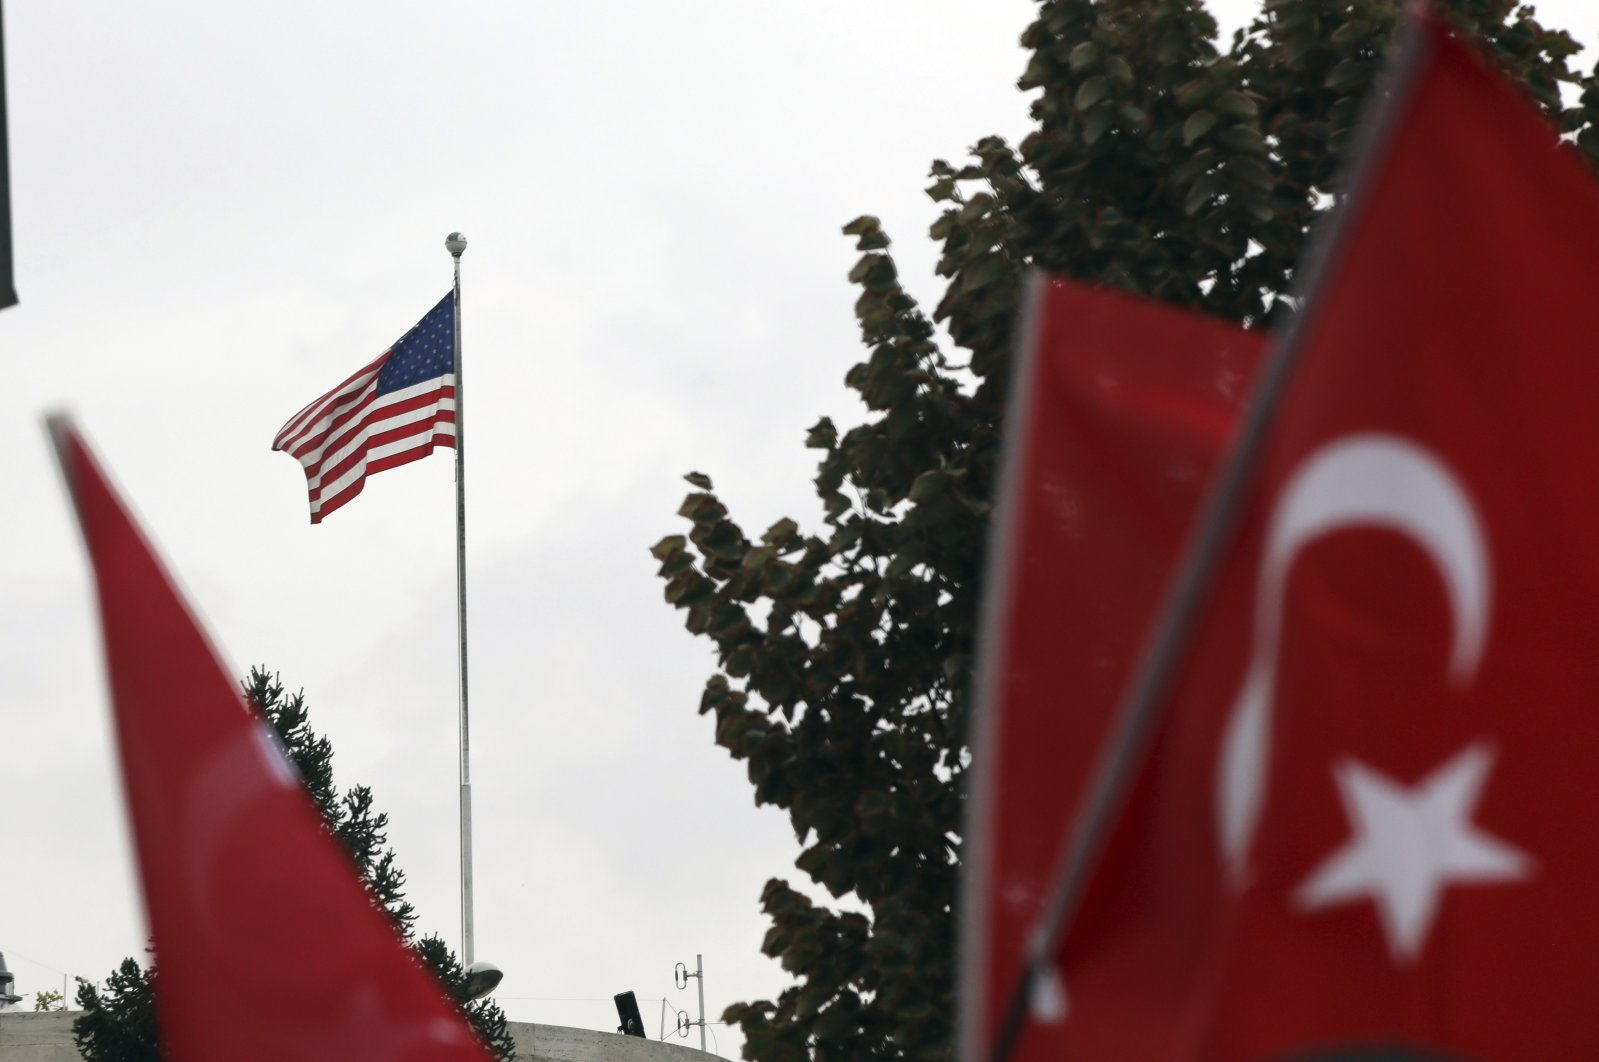 People hold national flags during a protest near the U.S. embassy, seen with a U.S. flag flying above it, in the capital Ankara, Turkey, Oct. 8, 2019. (AP Photo)